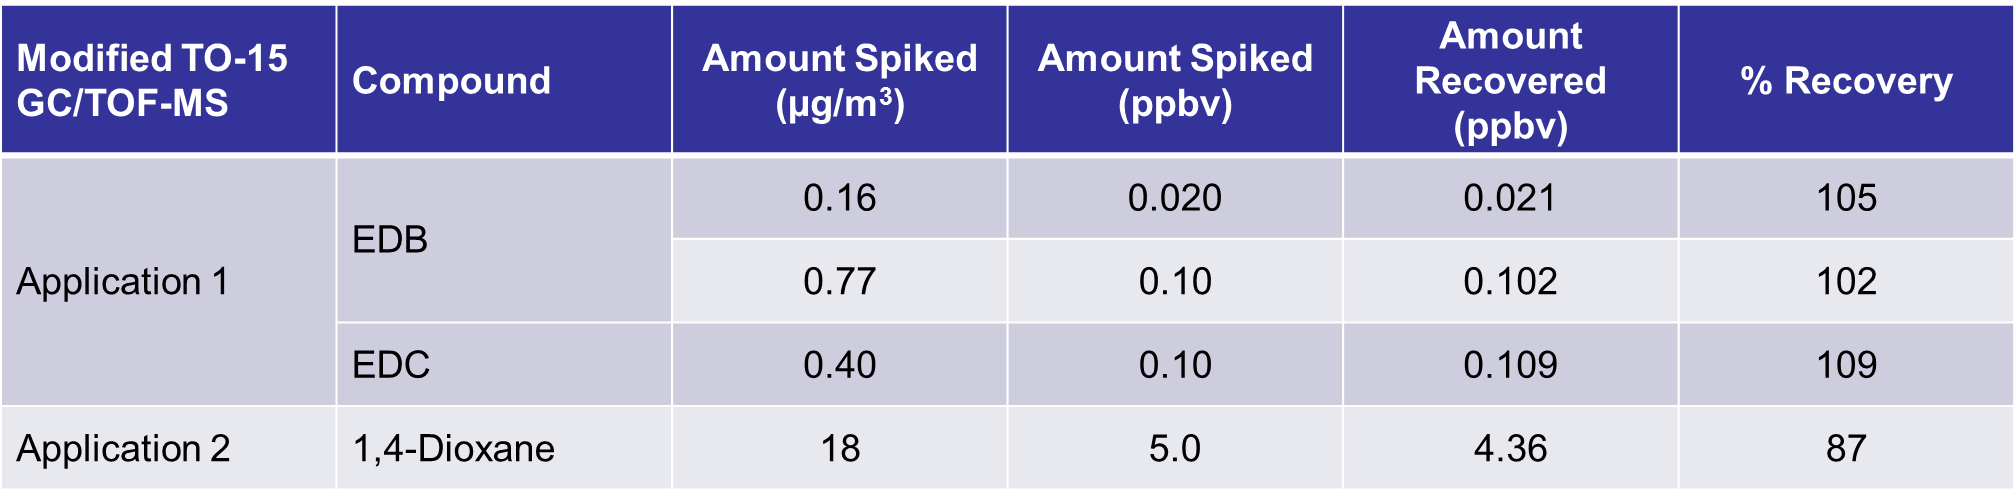 Modified TO-15 GC/TOF-MS Target VOCs recoveries in highly impacted test matrices